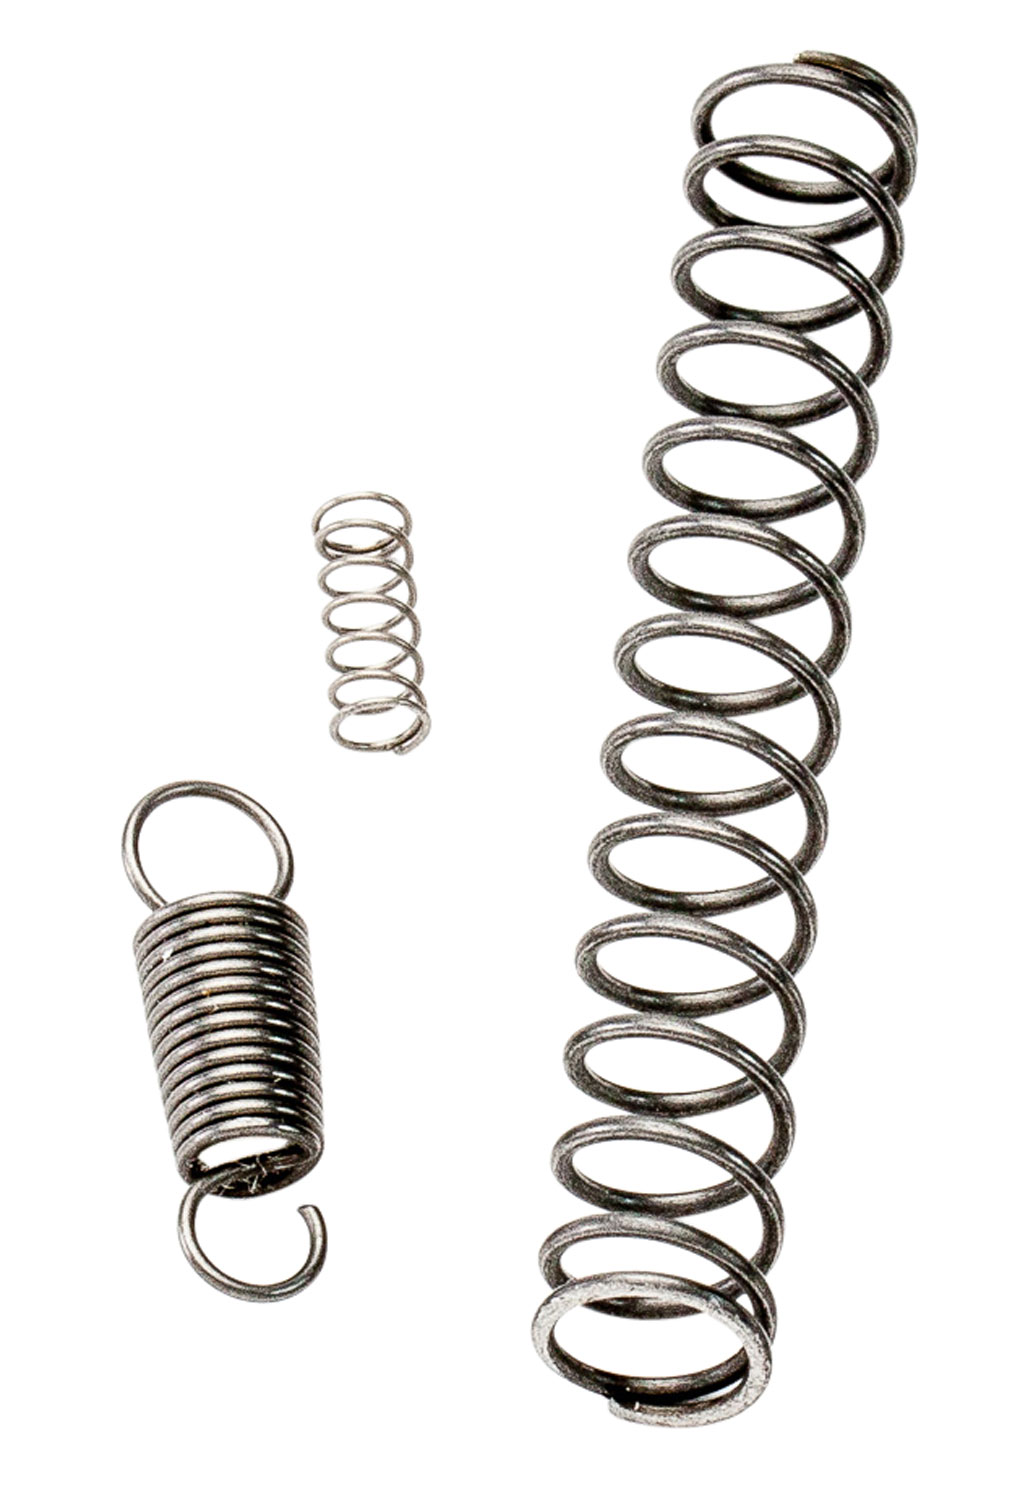 APEX TACTICAL SPECIALTIES 107021 Sigma Spring Kit S&W Sigma C,F,& VE Stainless 1 Kit